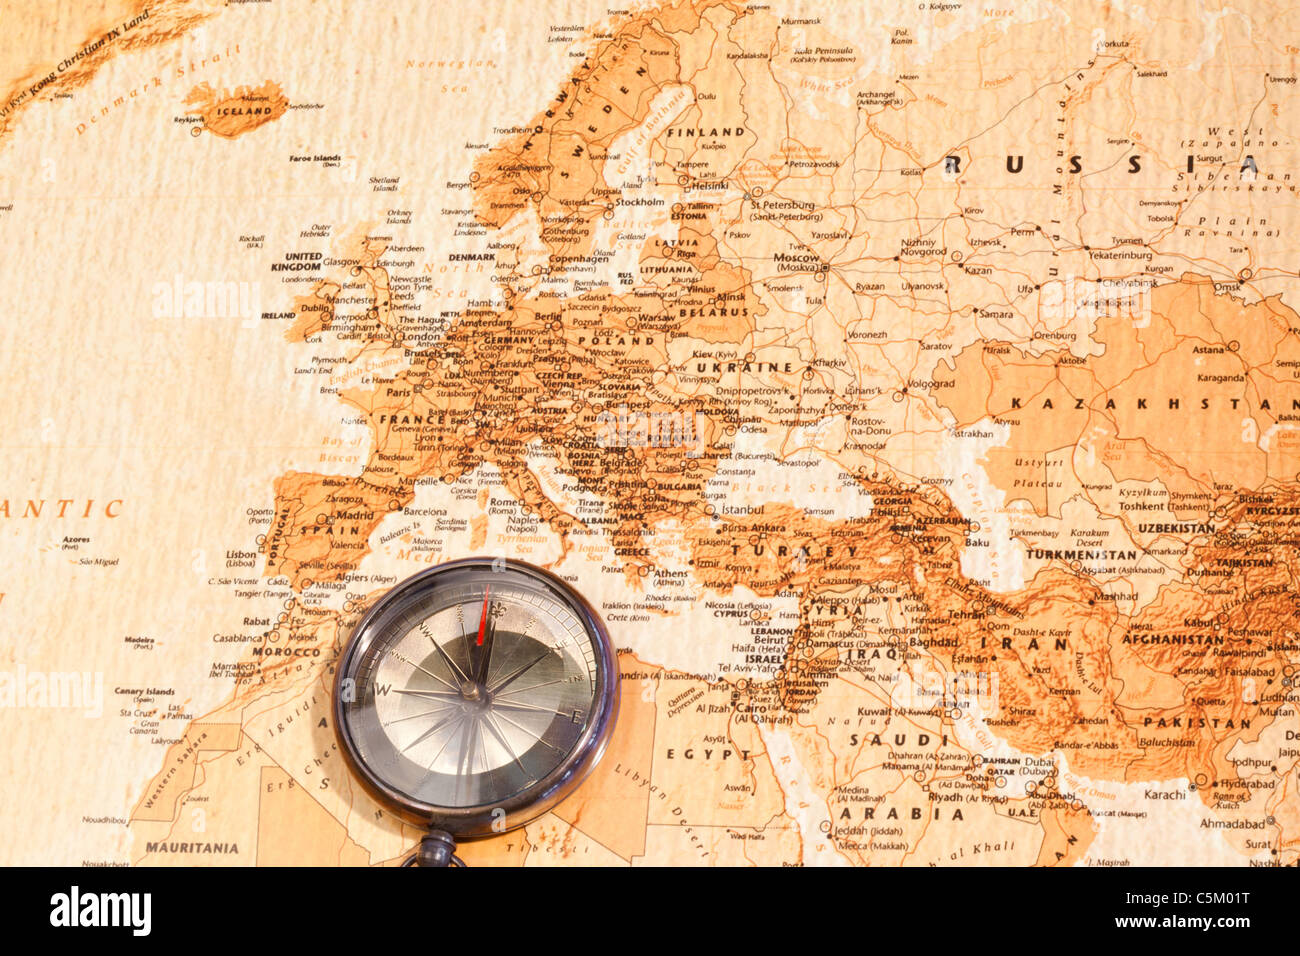 World map with compass showing Europe and the Middle East - Stock Image